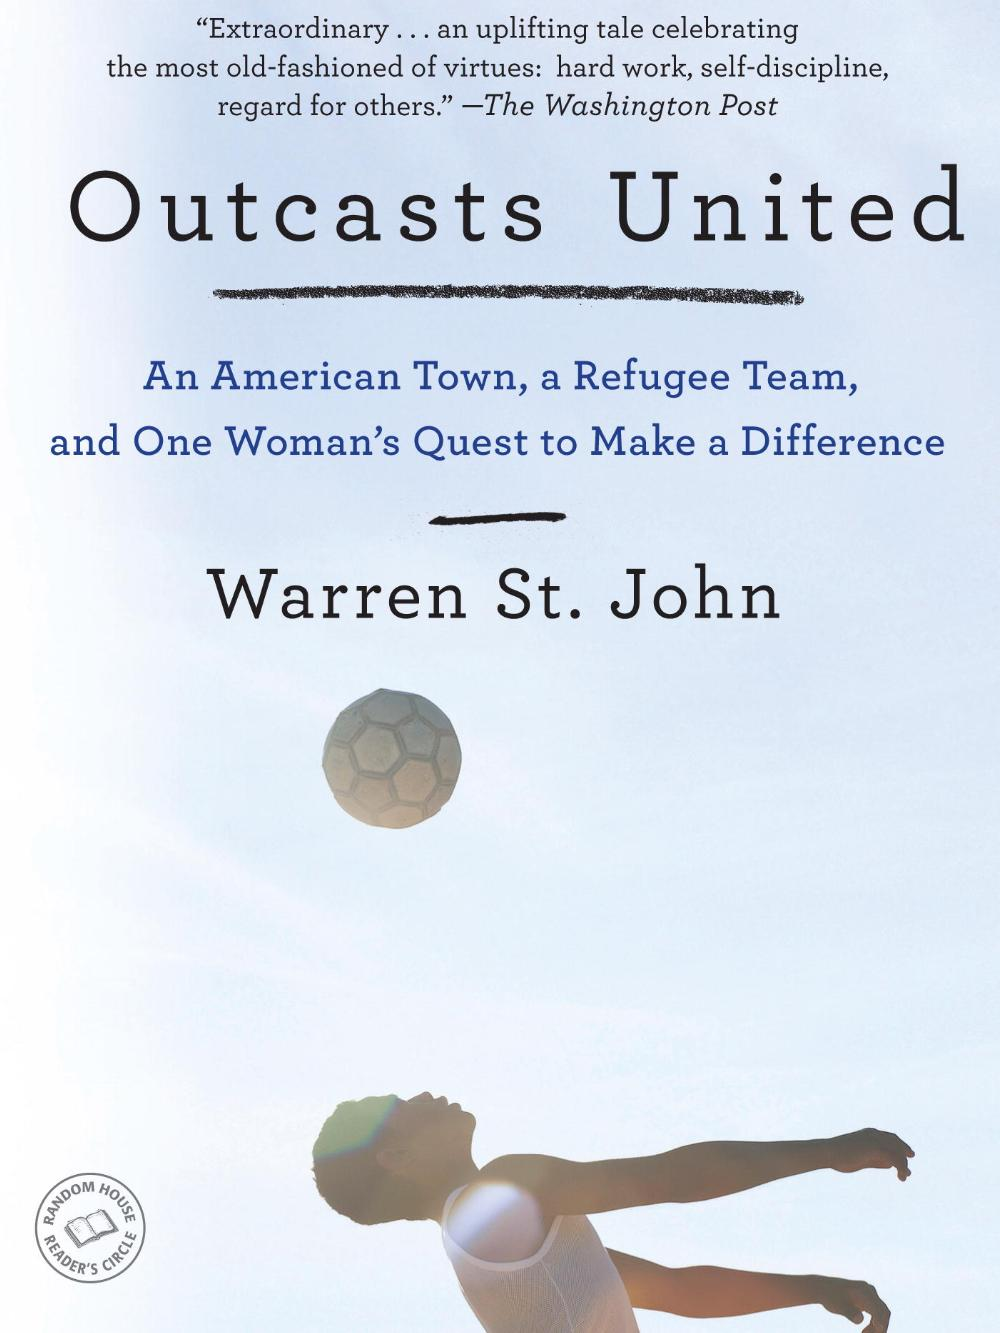 Outcasts United by Warren St. John, from Teen Read Week